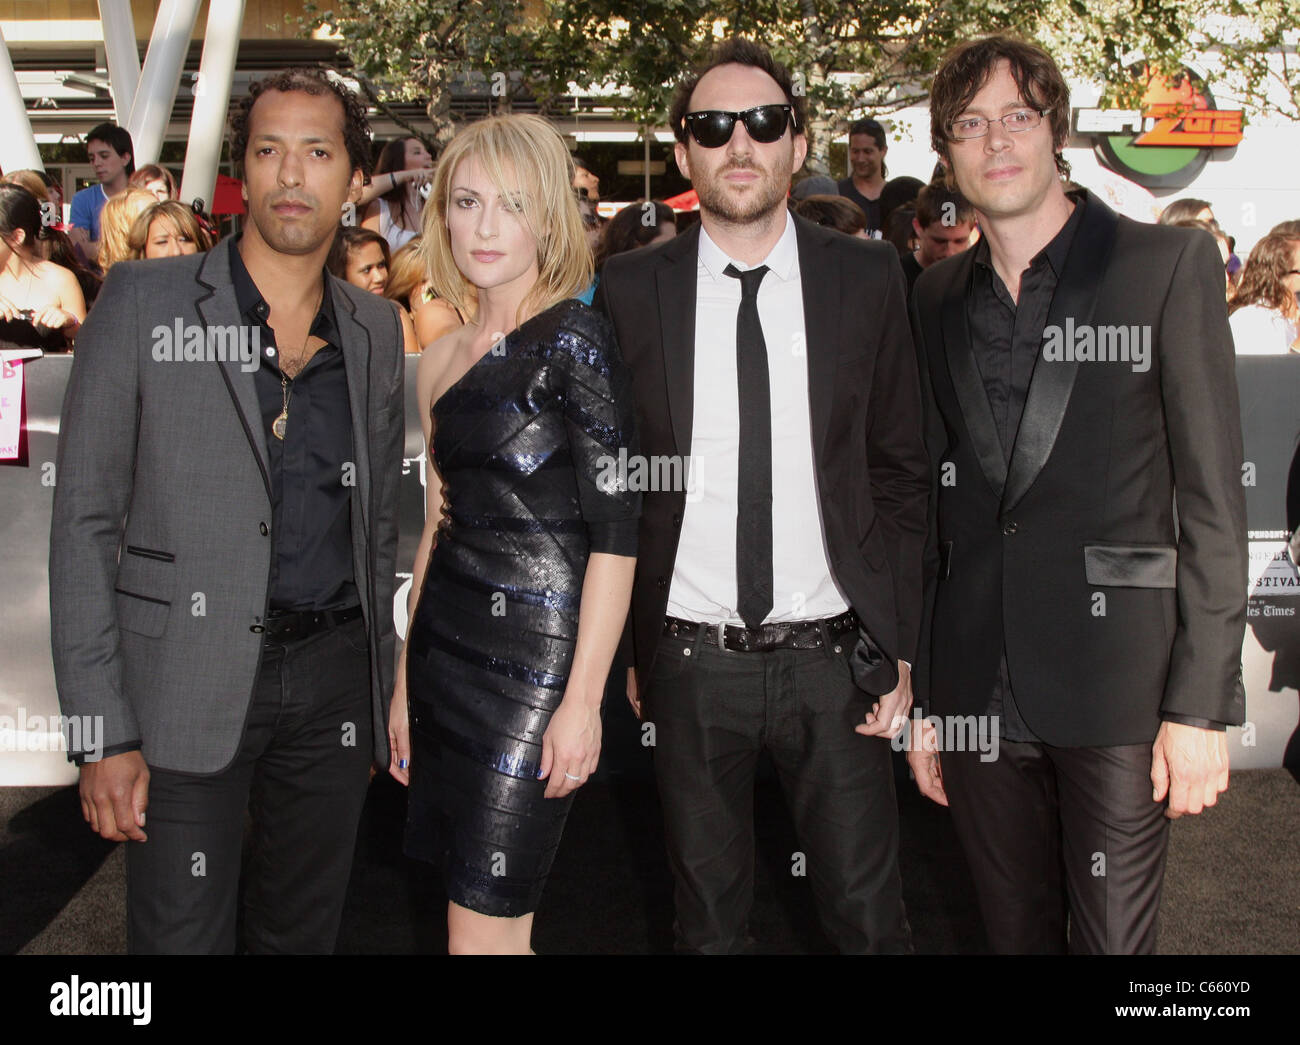 Metric at arrivals for THE TWILIGHT SAGA: ECLIPSE Premiere, Nokia Theatre L.A. LIVE, Los Angeles, CA June 24, 2010. - Stock Image